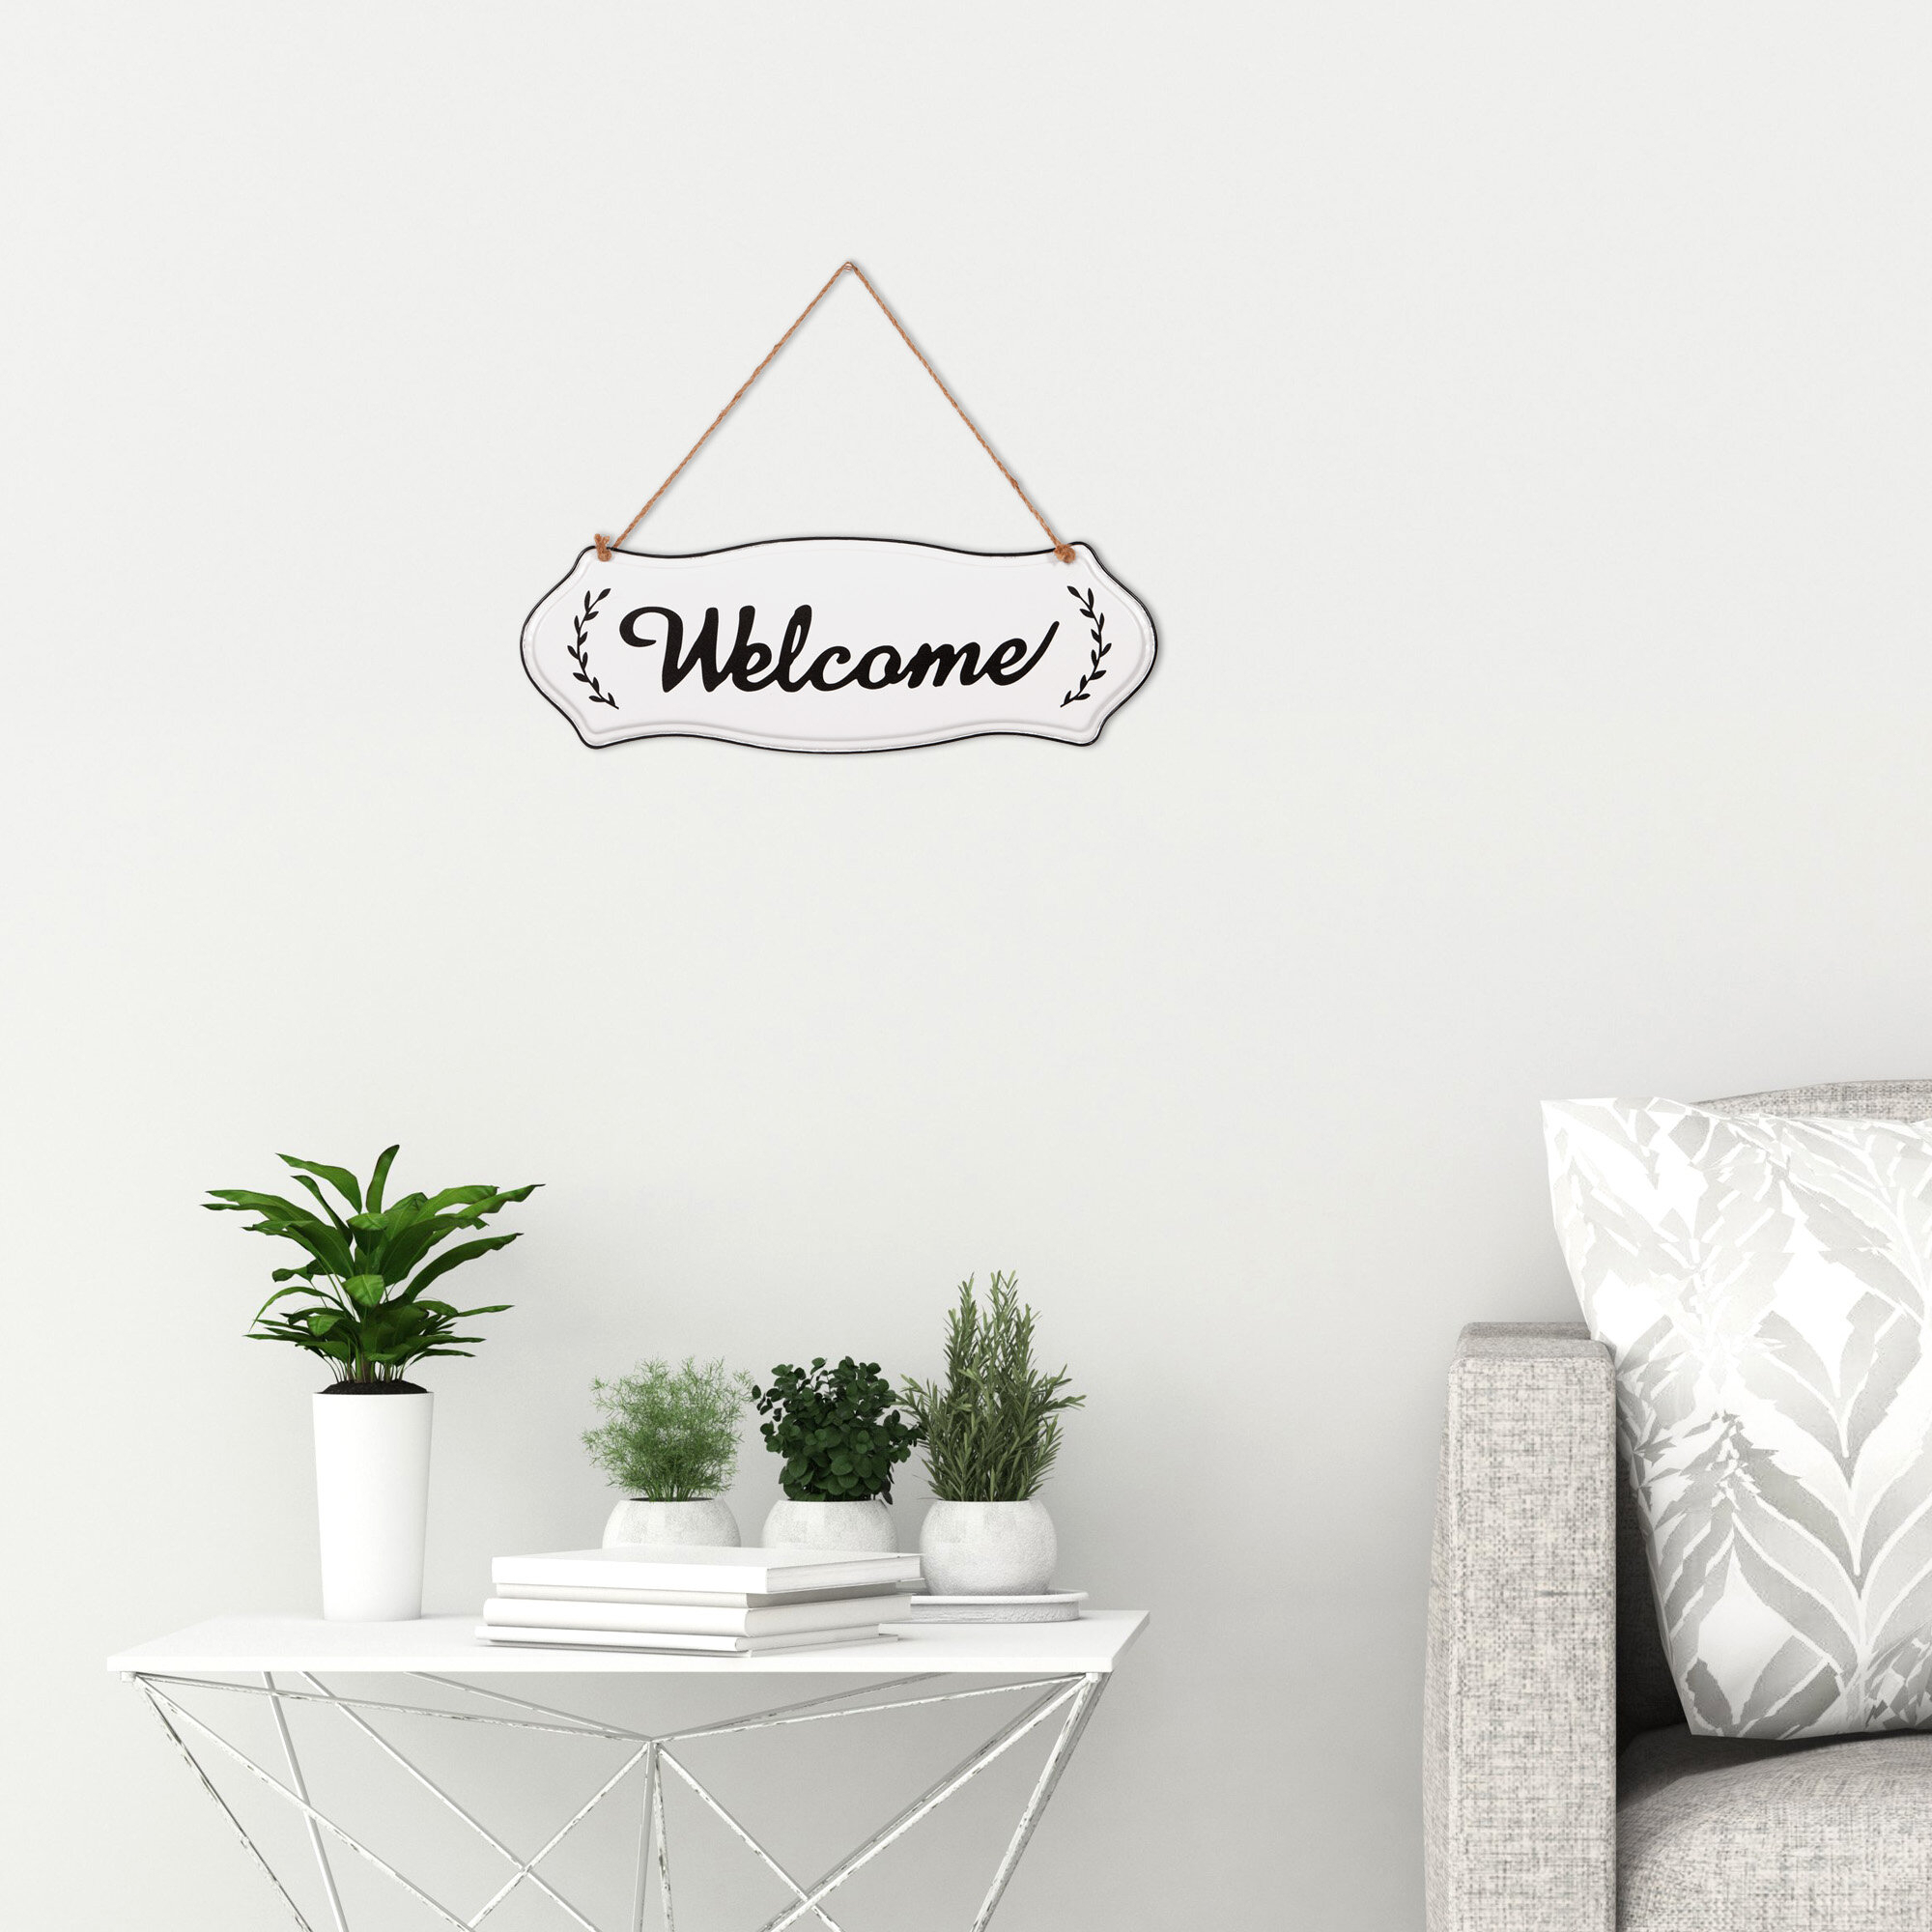 20 Inspirations Of Metal Rope Wall Sign Wall Decor Regarding Metal Rope Wall Sign Wall Decor (Photo 9 of 30)